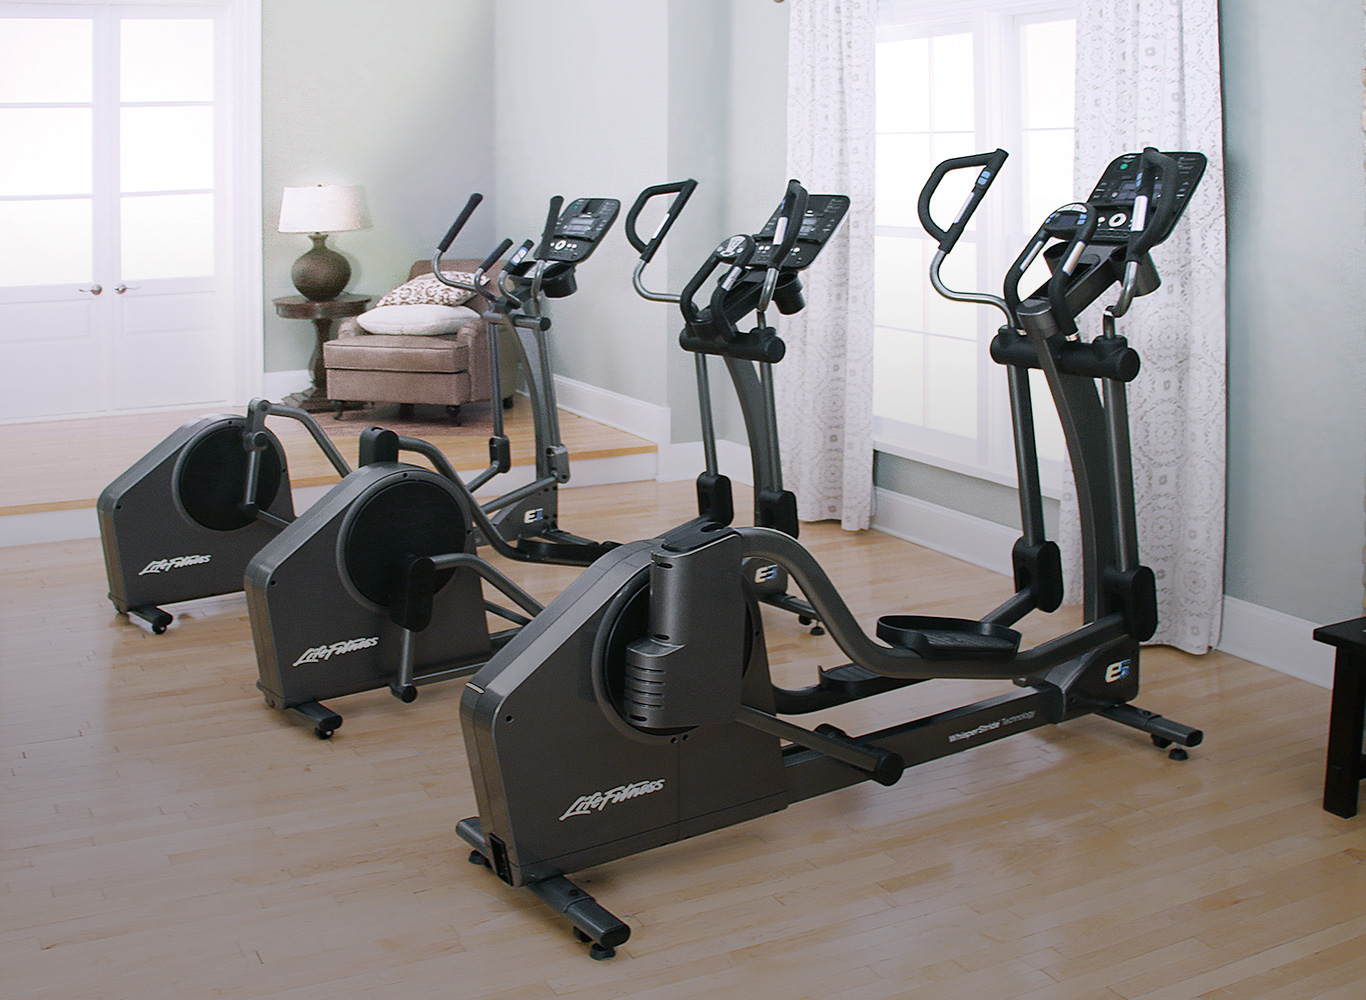 Introducing the Life Fitness E-Series Elliptical Cross-Trainers